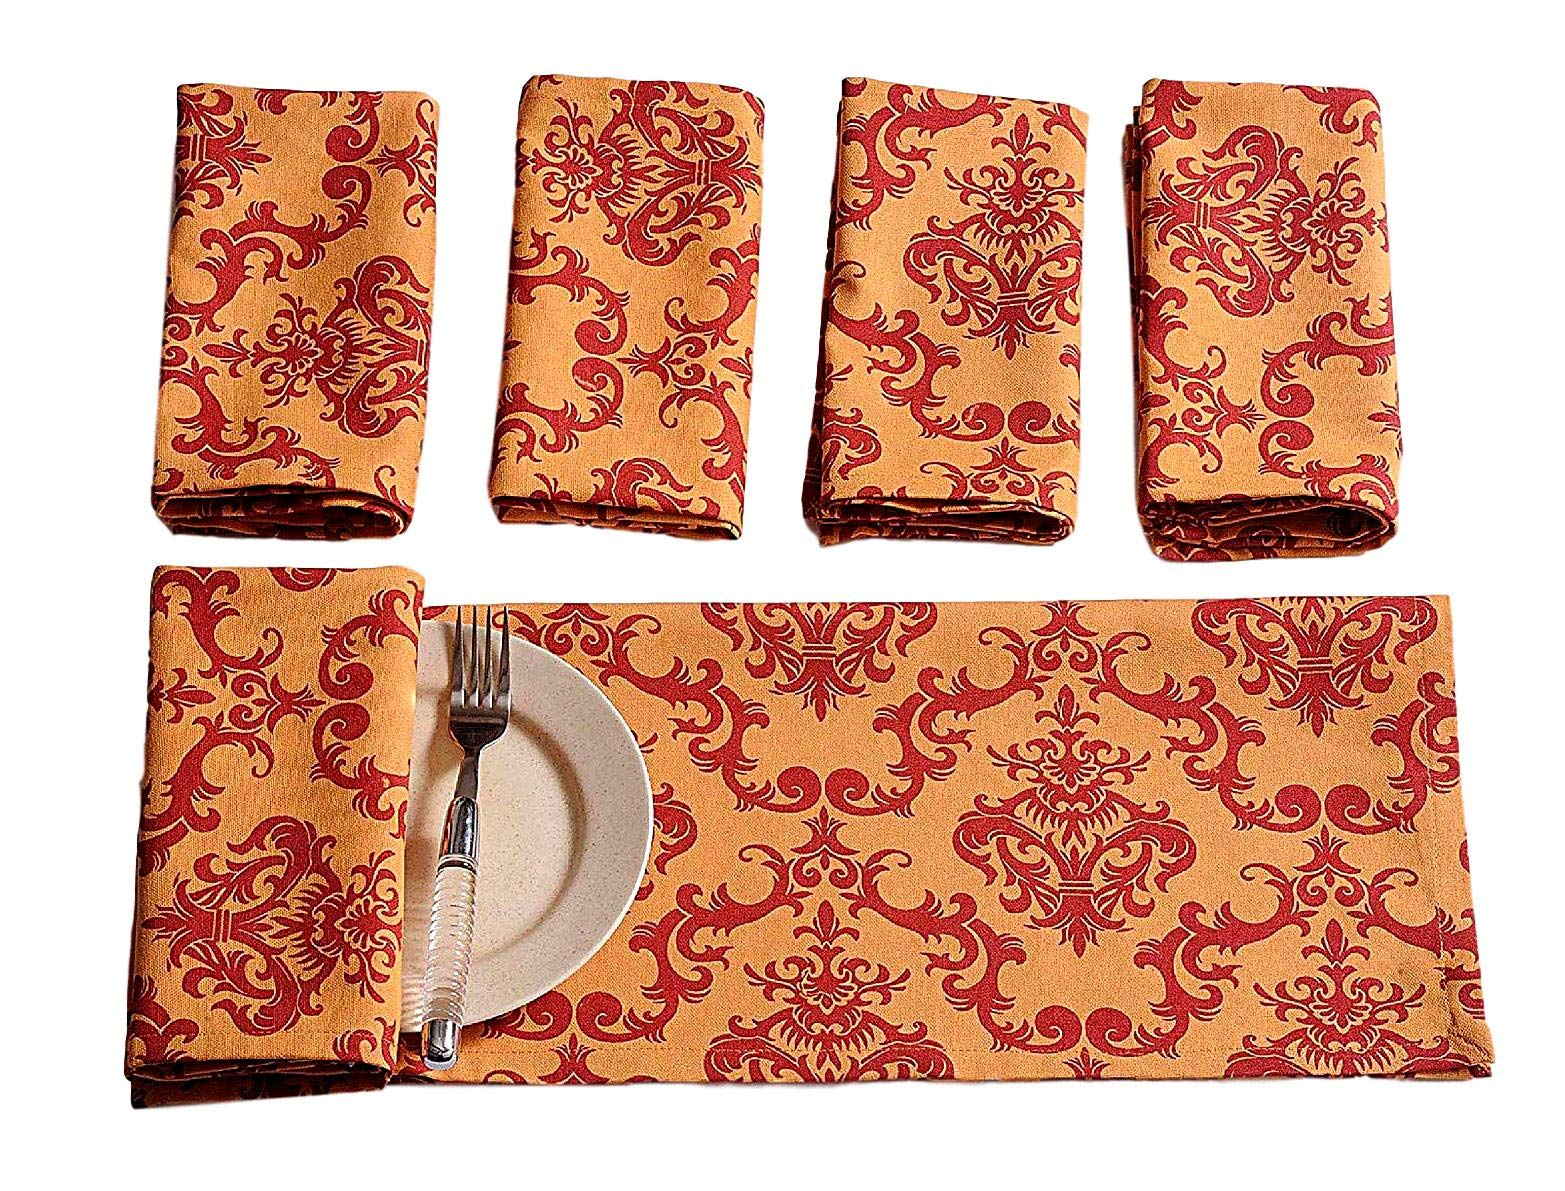 Premium Cotton Cloth Napkins Set Of 6 Size 16 X 16 Inches Colored Red Motif Personalized Kitchen Dinner Table Wedding Party Décor Indian Home Dinning Decorations